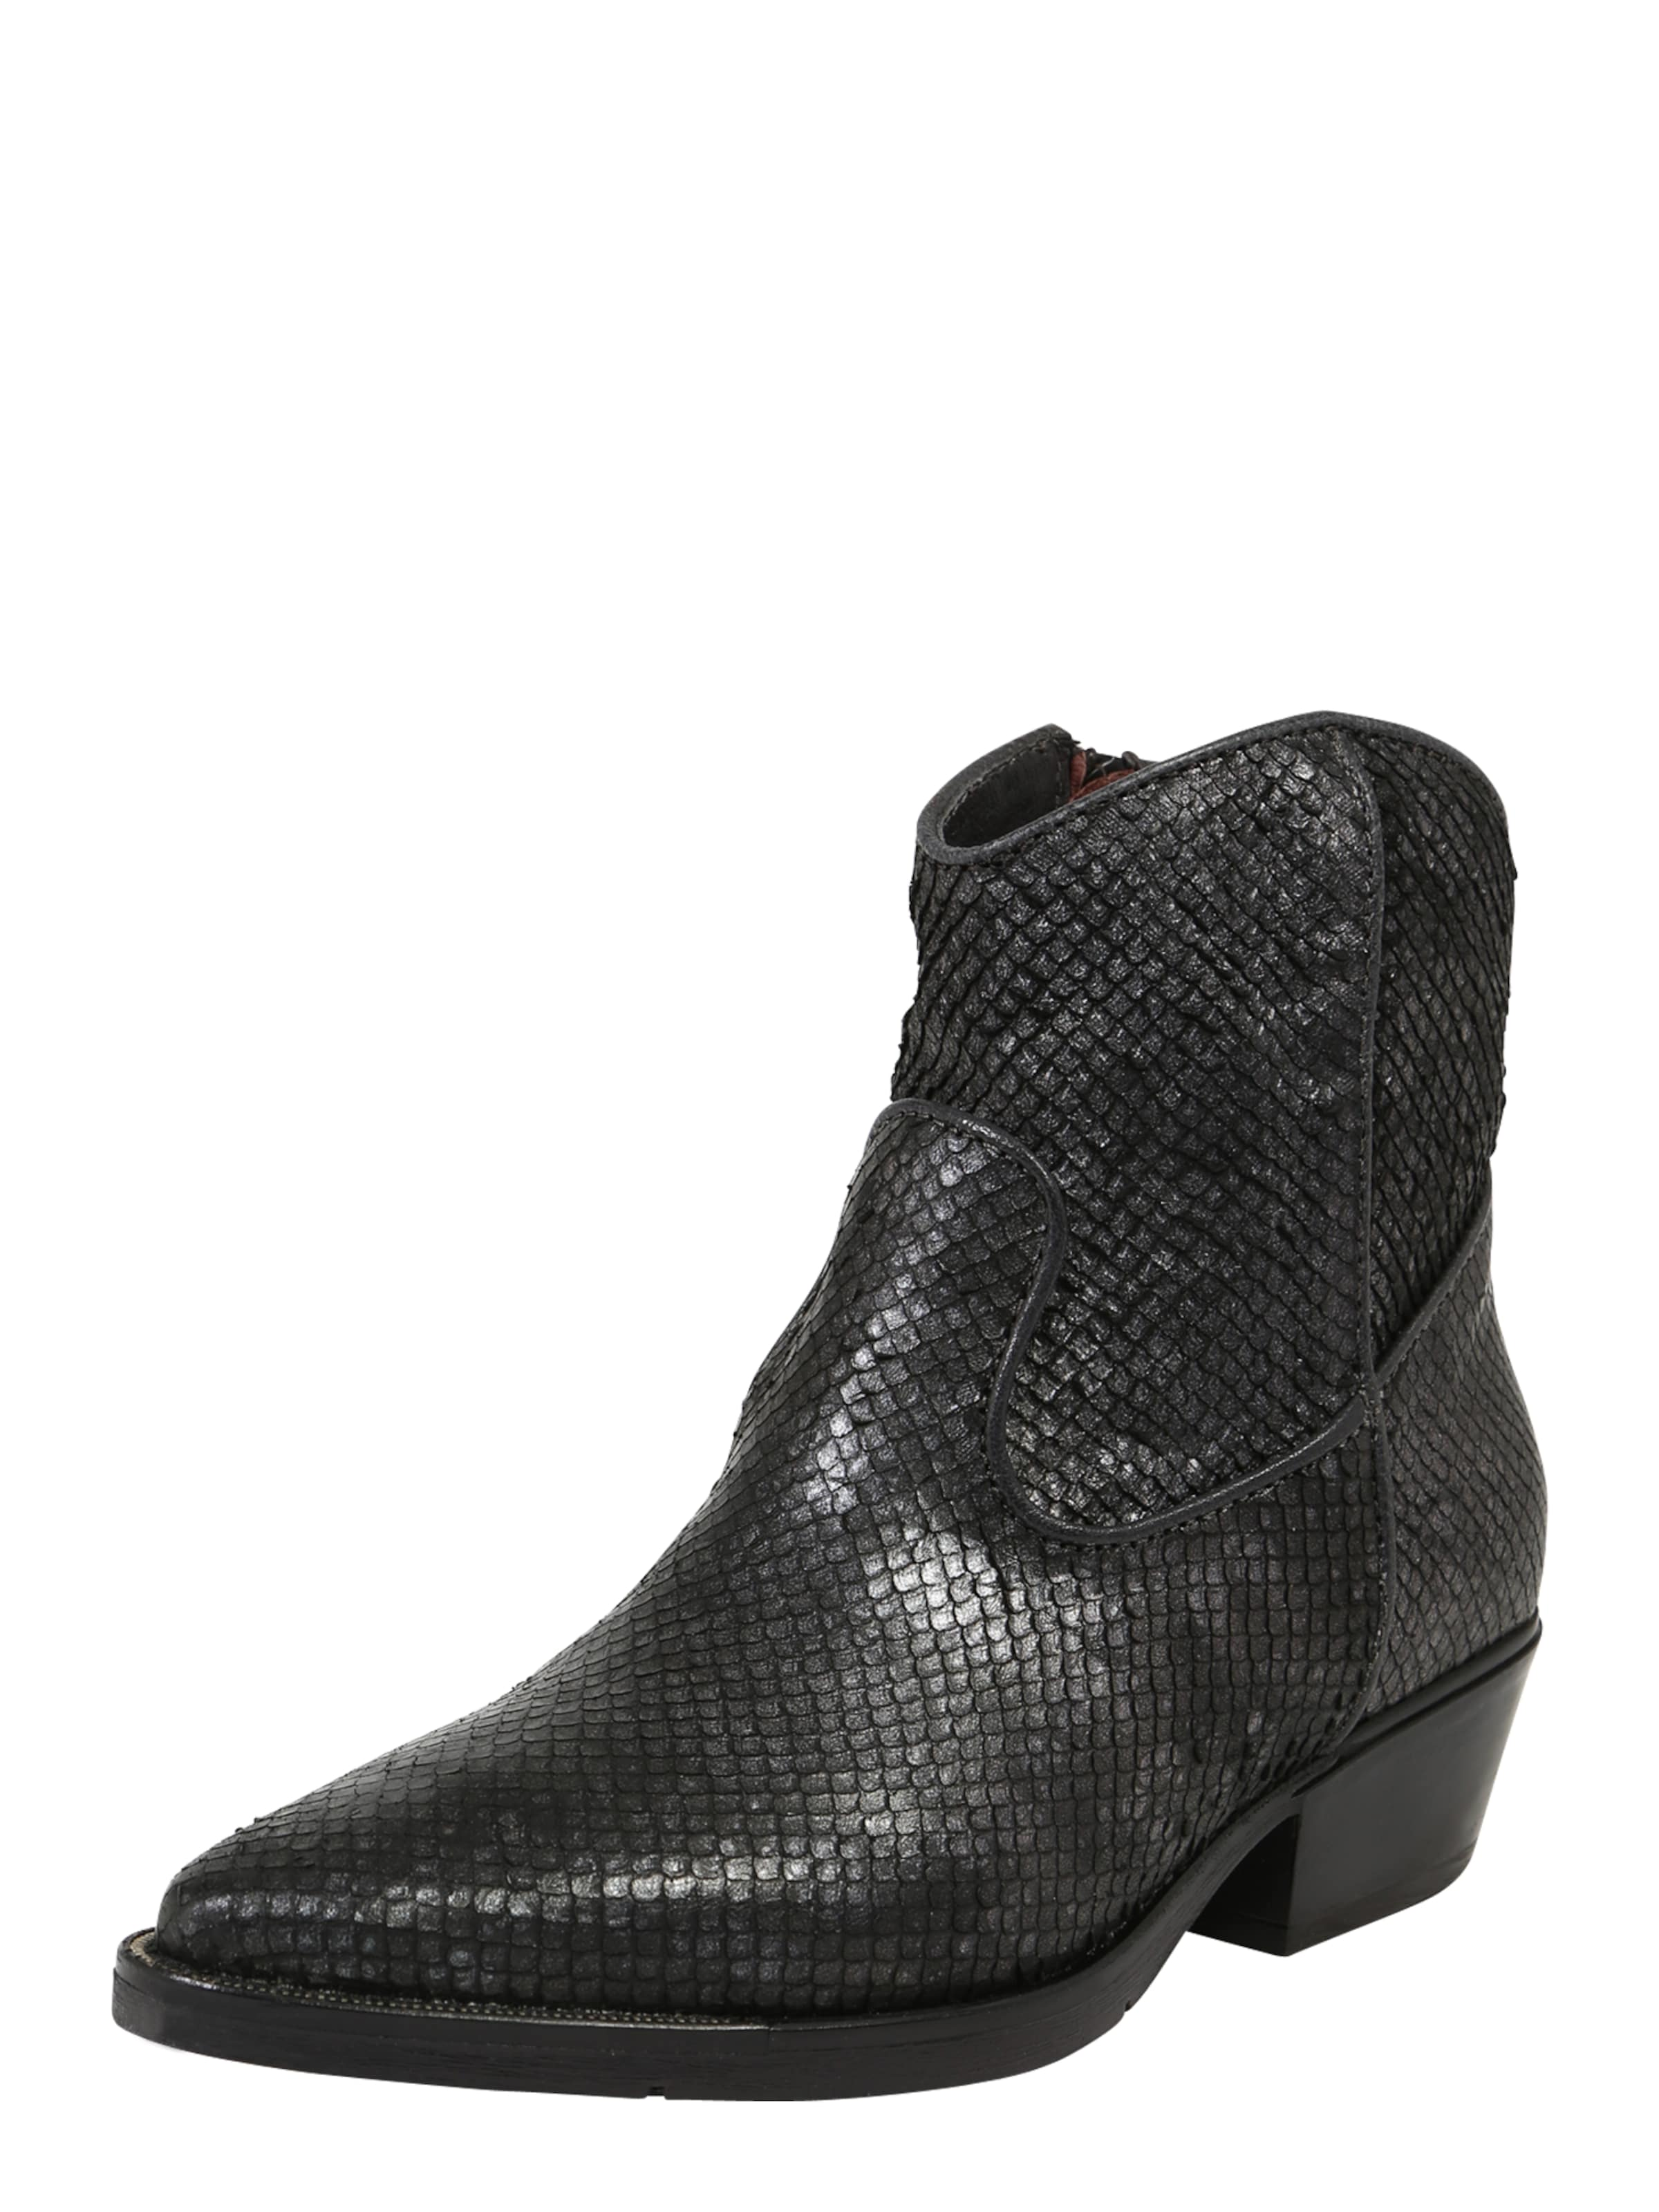 In Anthrazit Stiefelette In Mjus Mjus Stiefelette W9IDH2YE